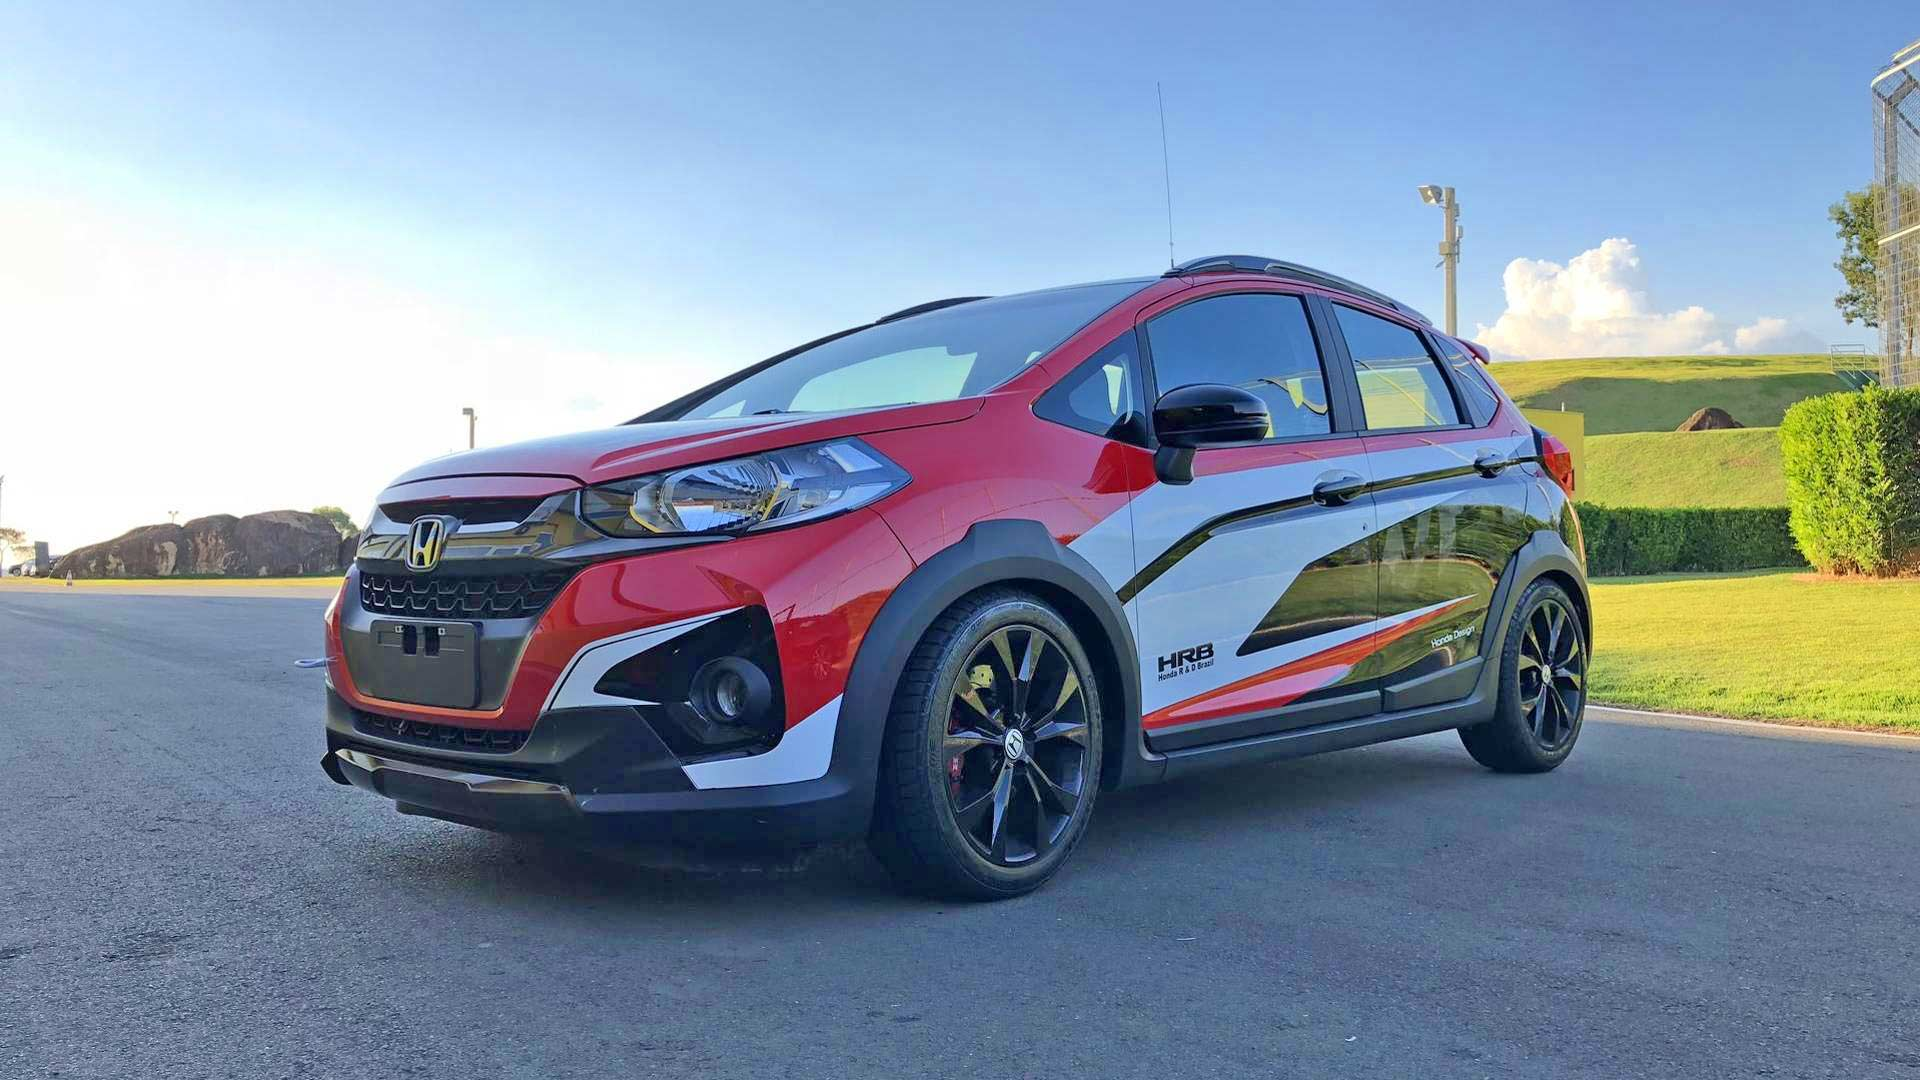 Honda-WR-V-Turbo-pace-car